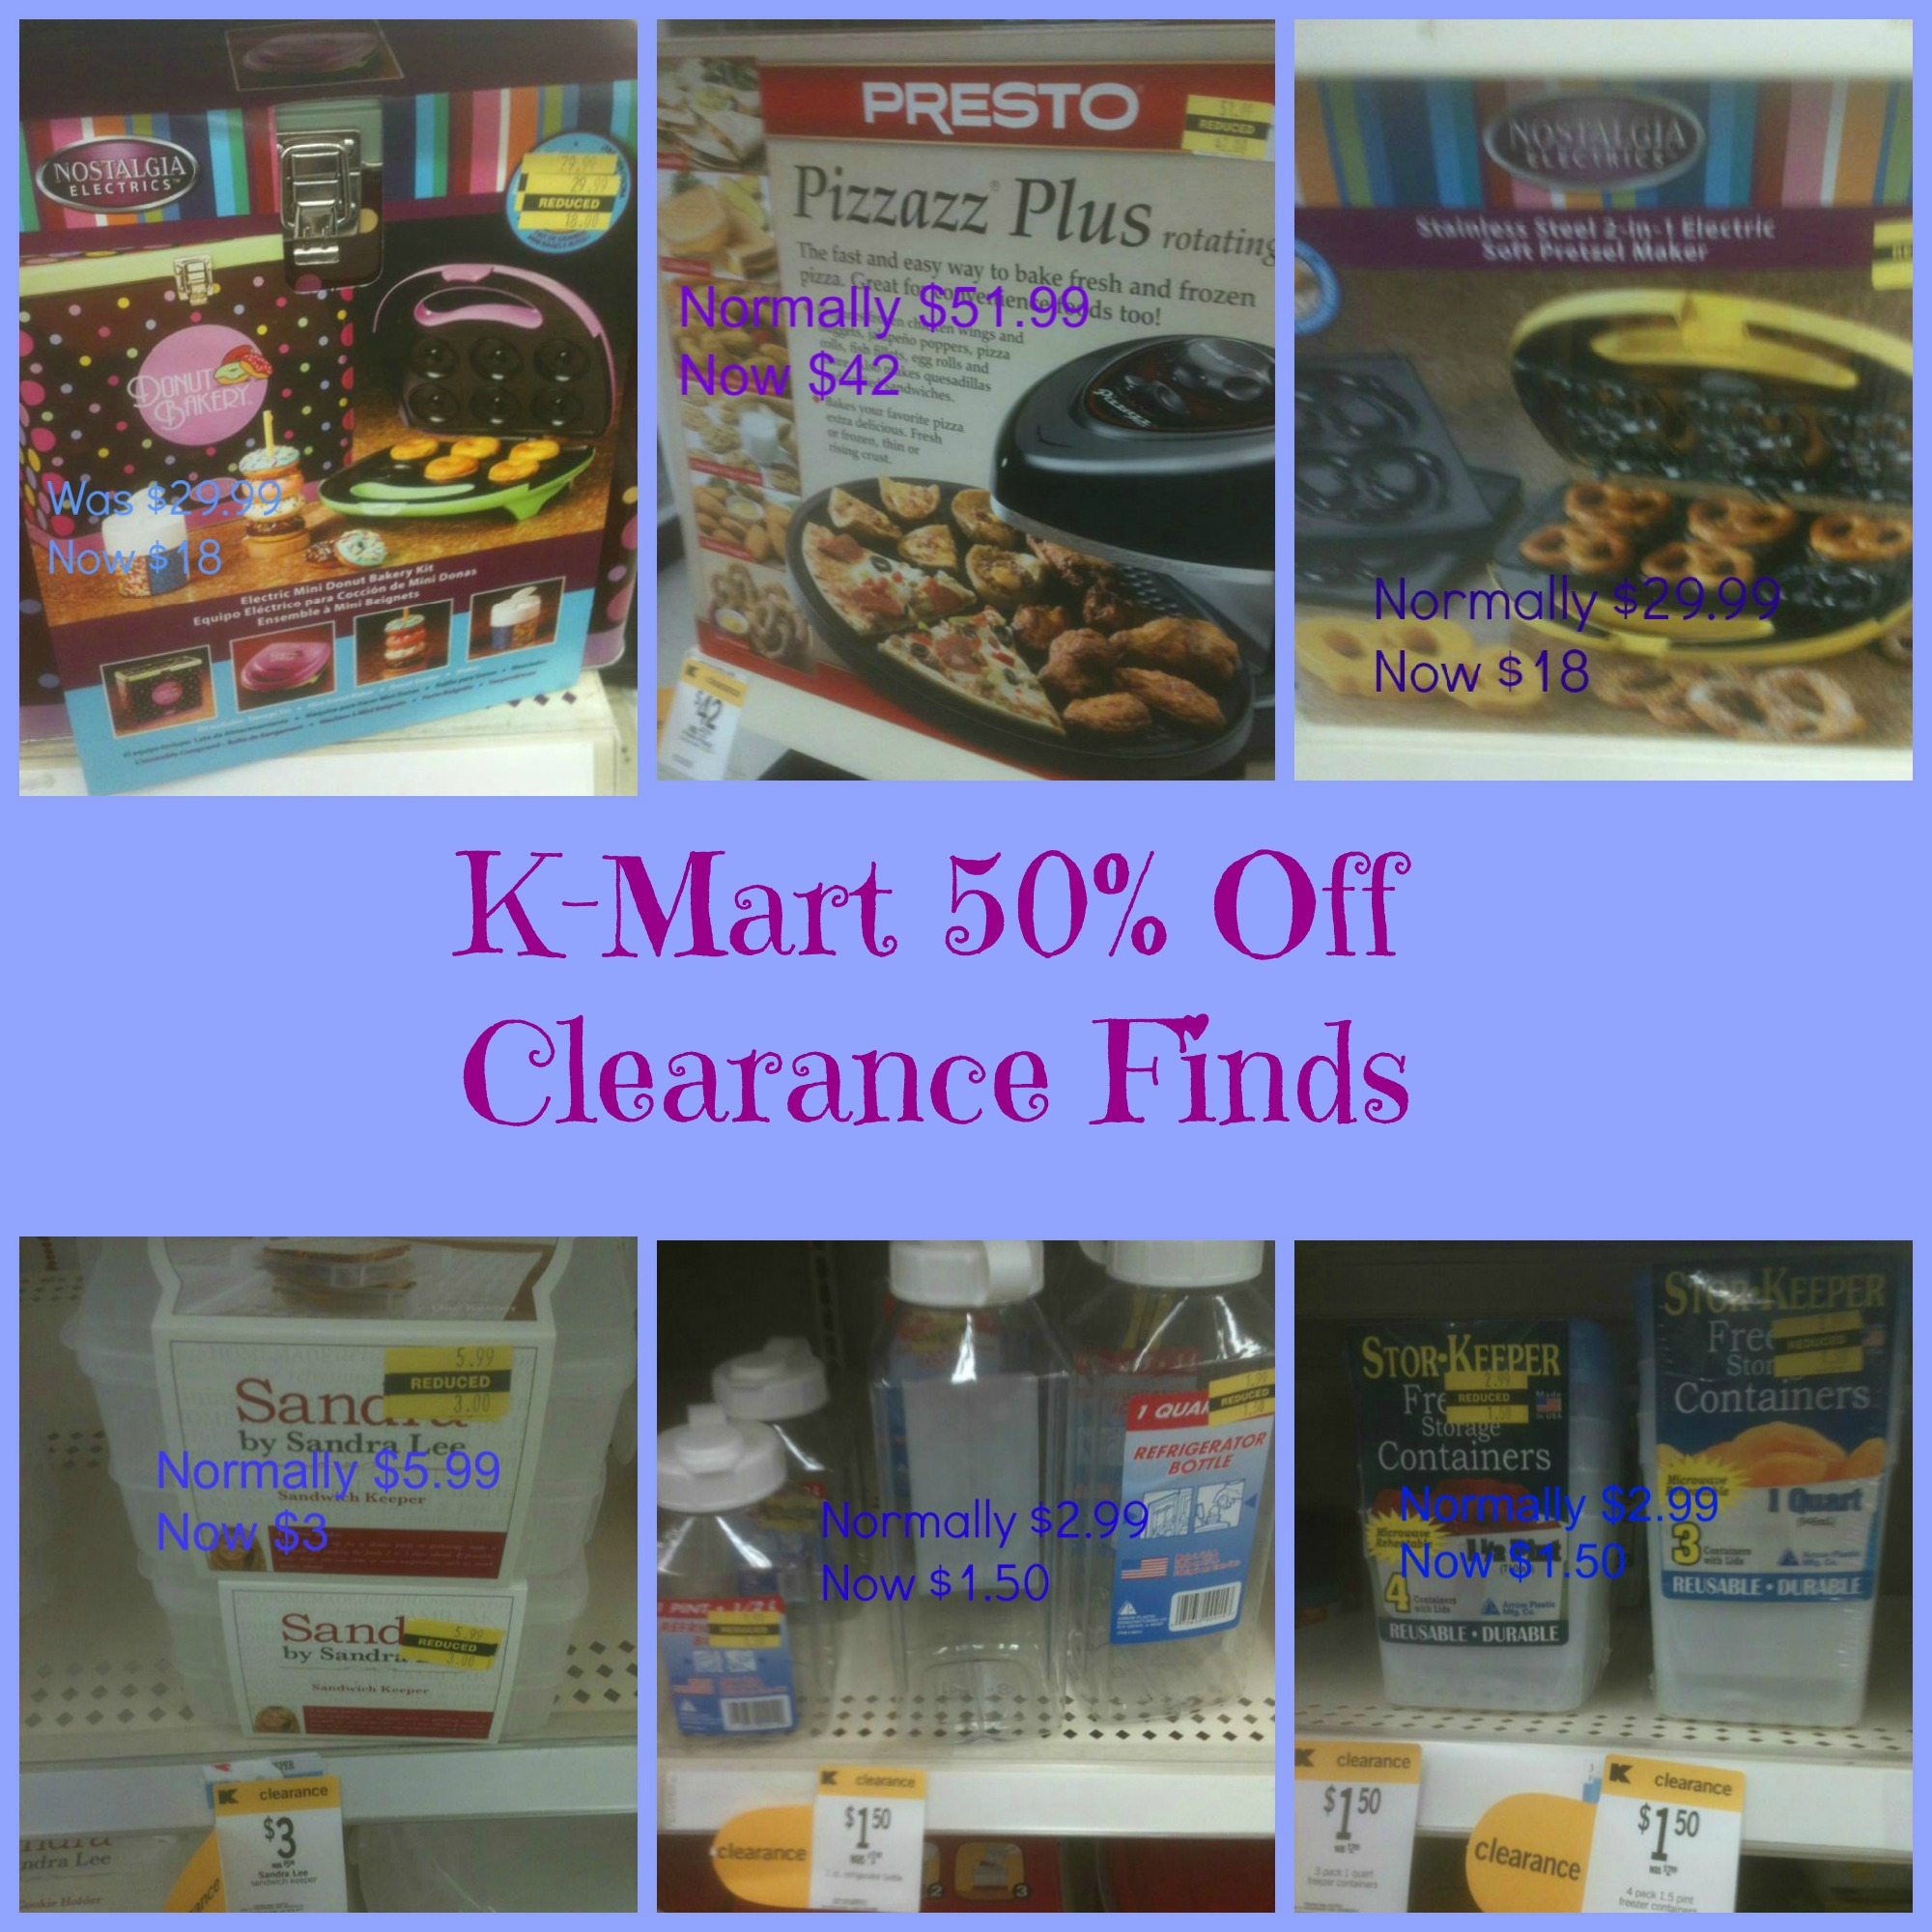 Kmart Clearance